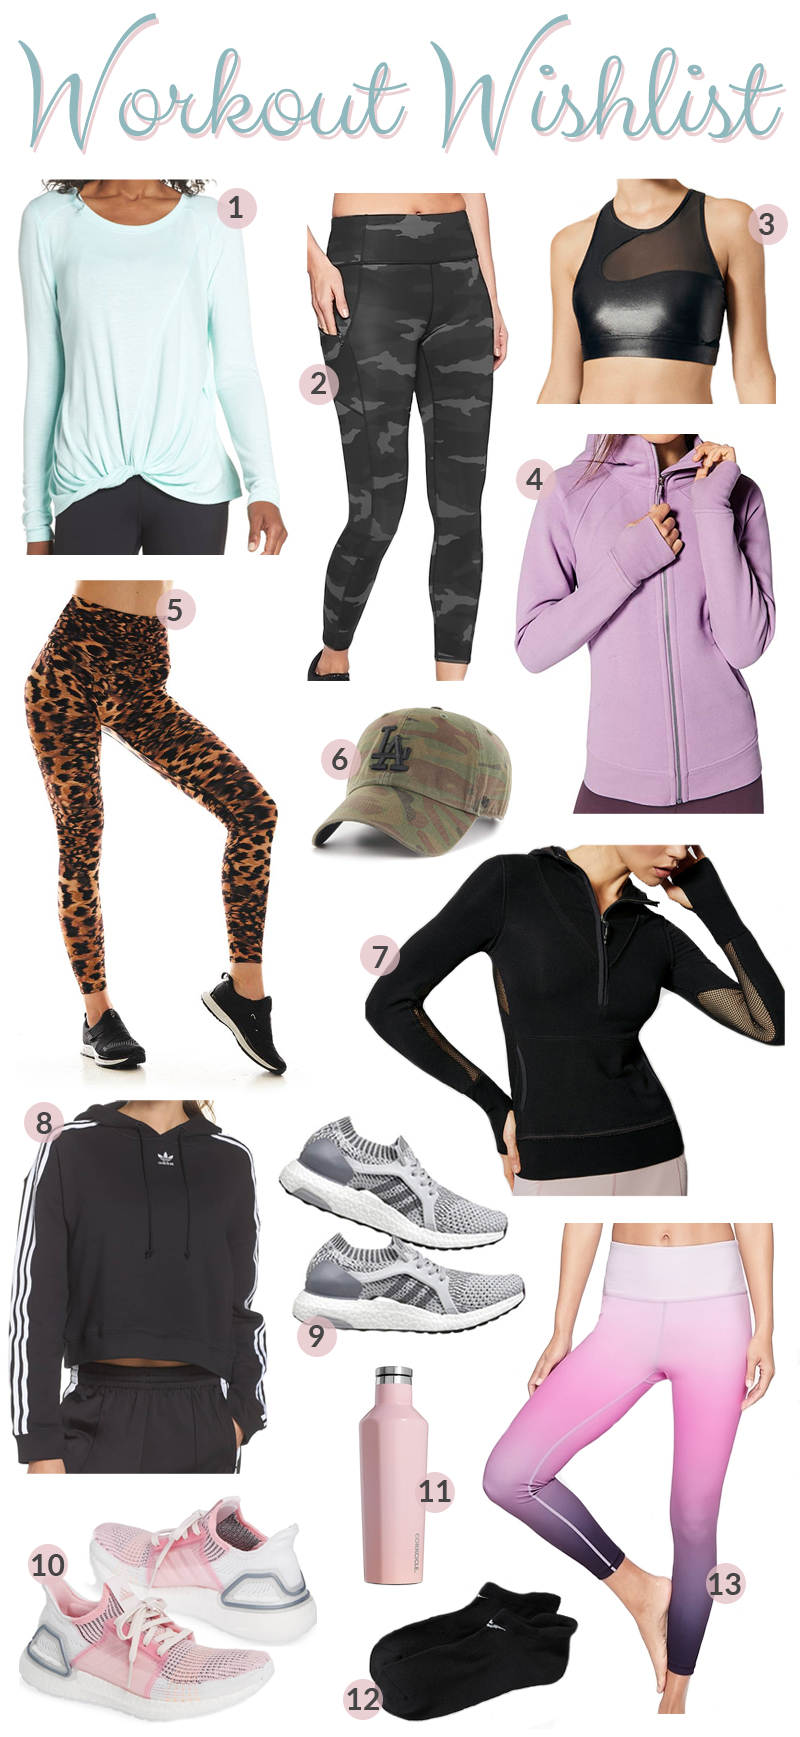 Wish List: The Best Workout Gear for Women